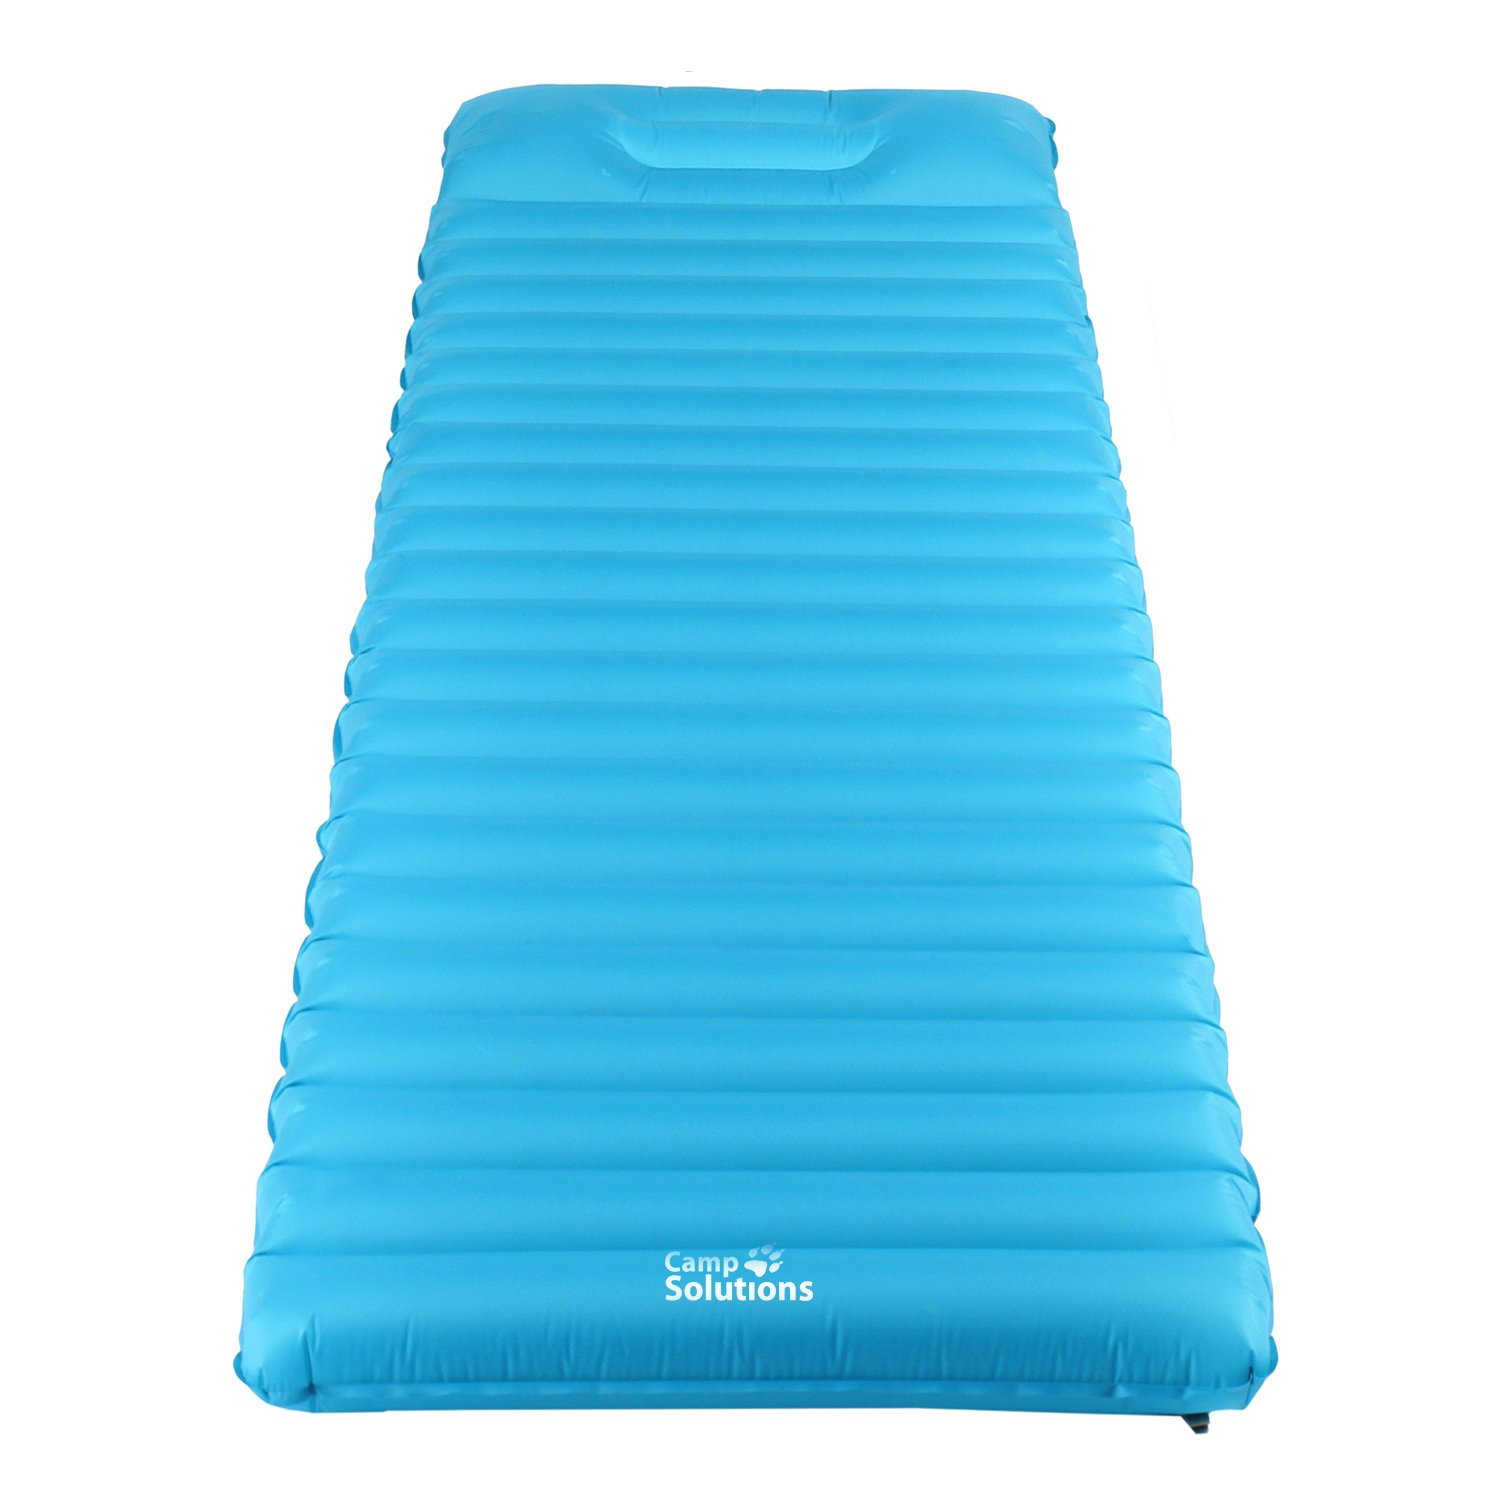 Amazon.com : Camp Solutions Sleeping Pad TPU Thick Ultralight Lightweight  Air Inflating Camping Mattress Camp Pad attached Pillow For Outdoor Camping  Hiking ...